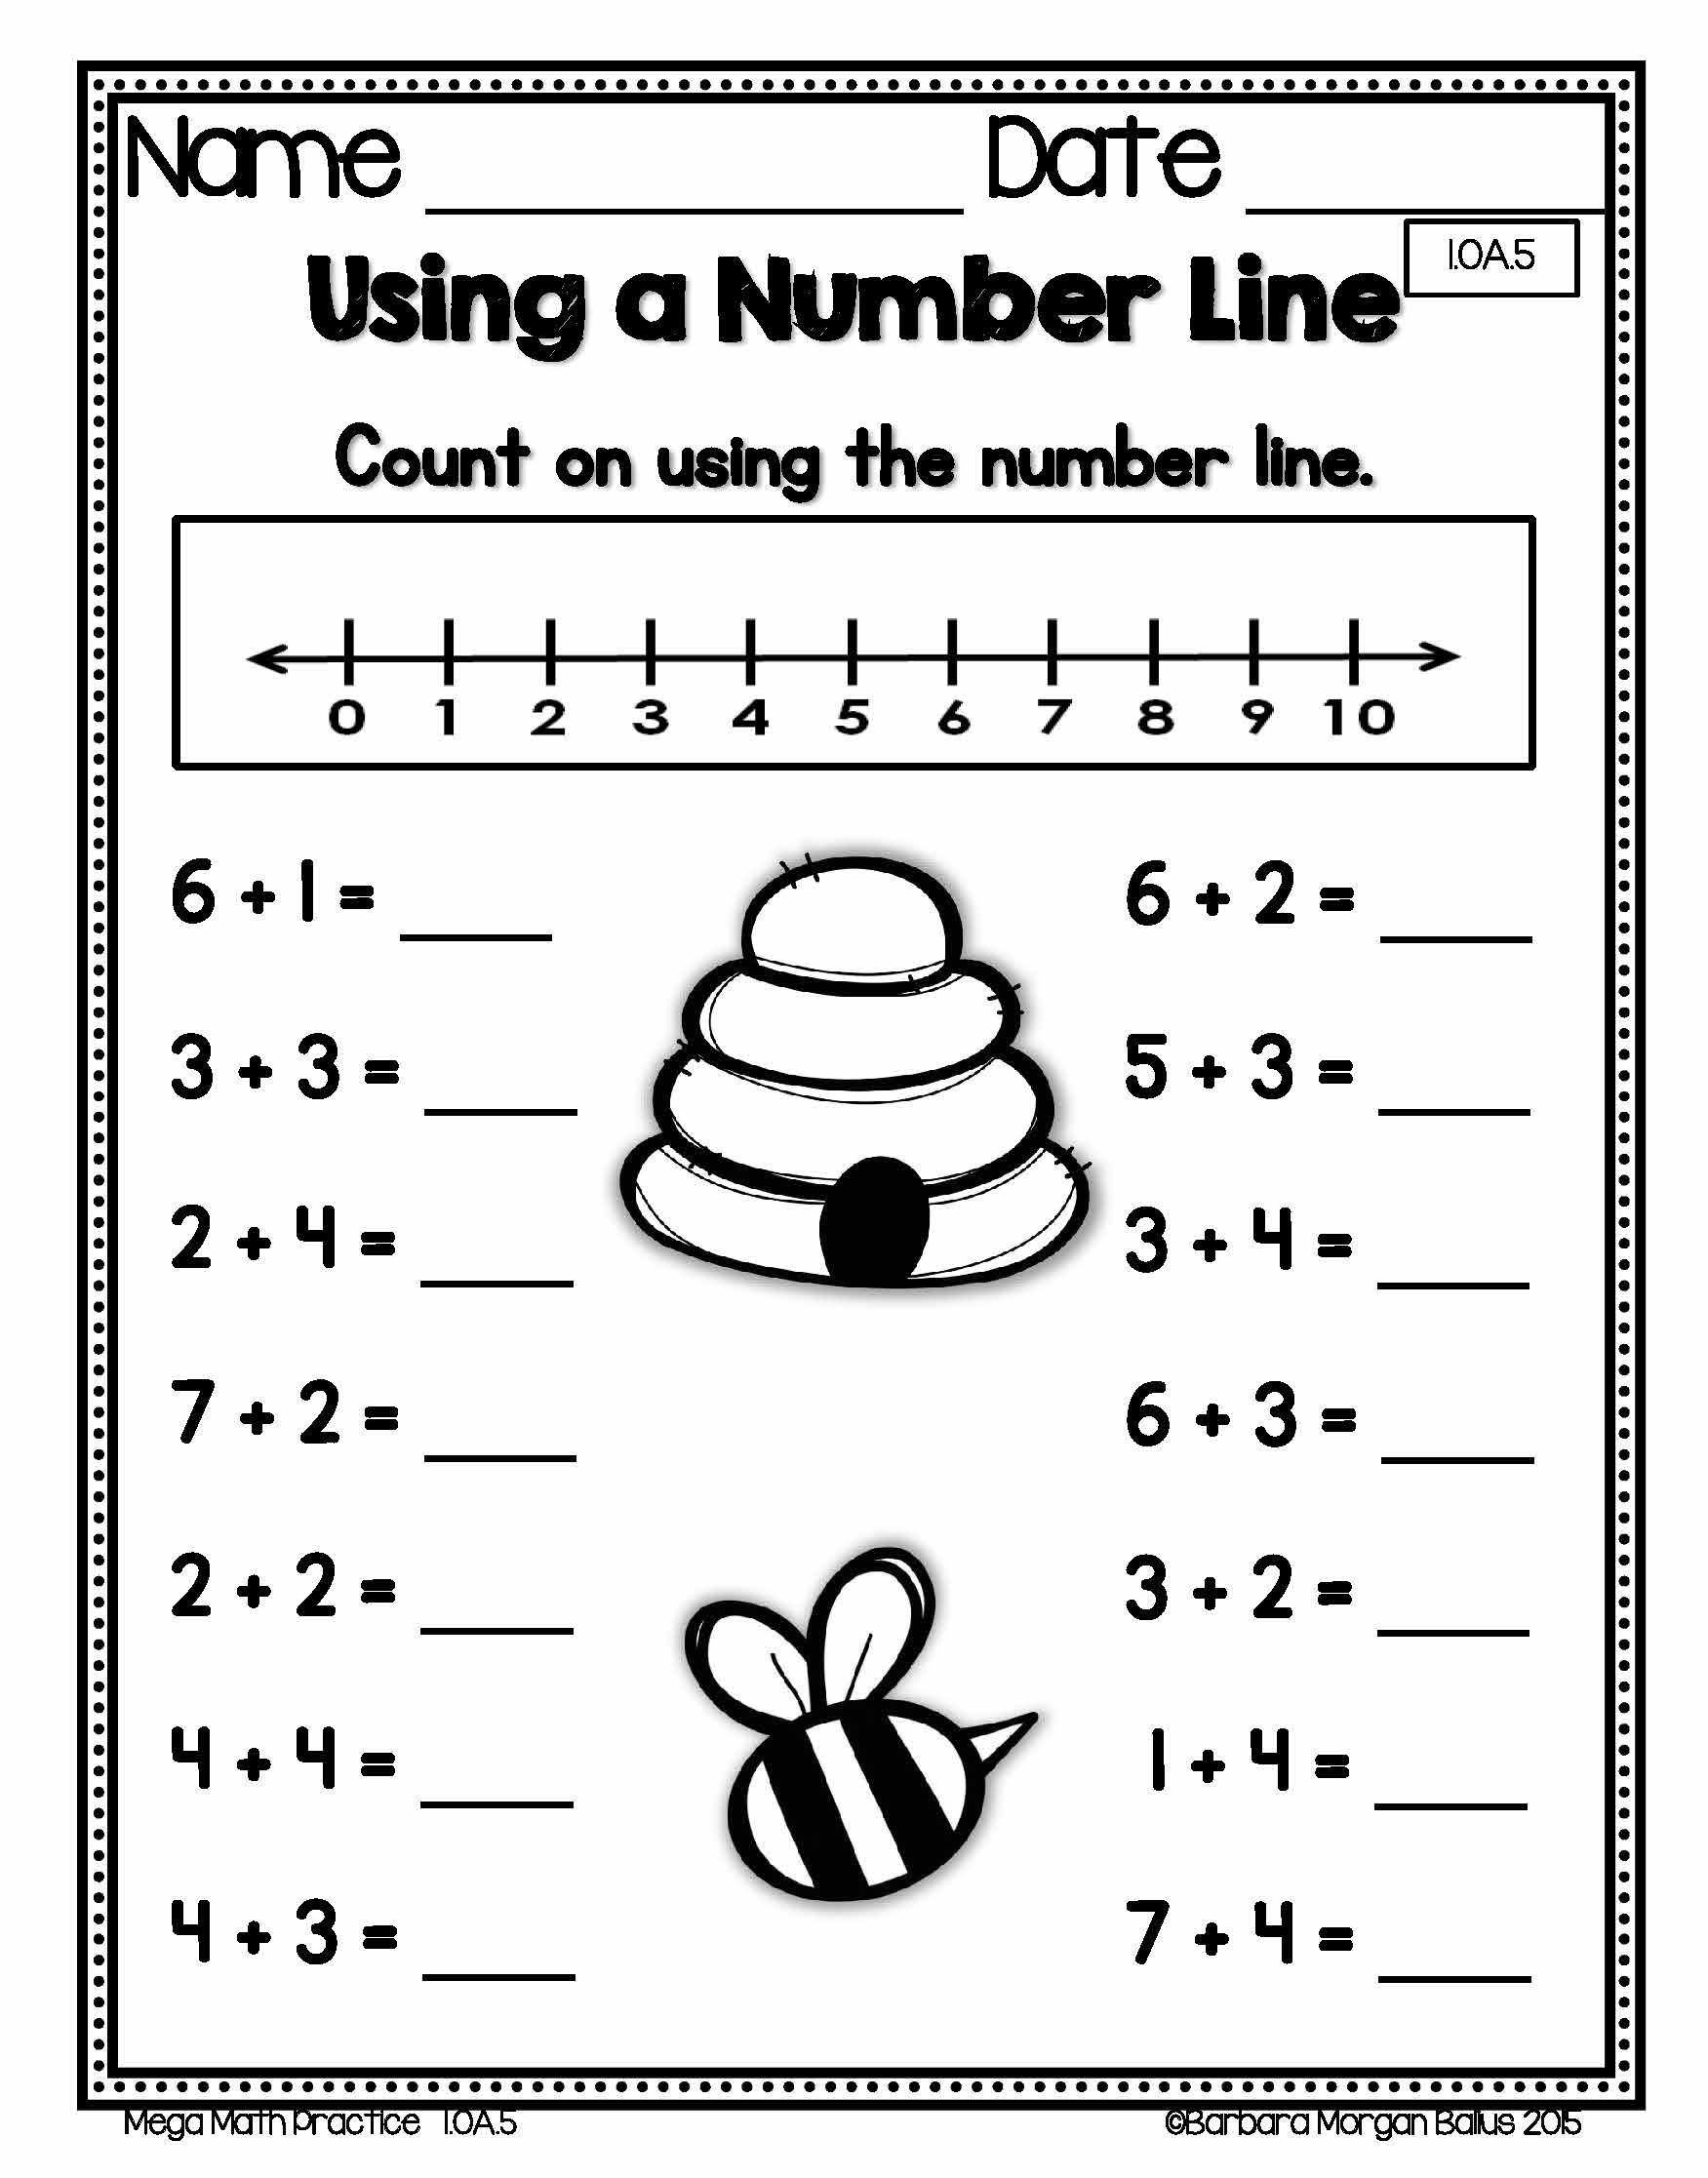 Worksheet First Standard Maths 1000 images about math centersnumber sense on pinterest ten first grade using a number line practice common core standard 1 oa